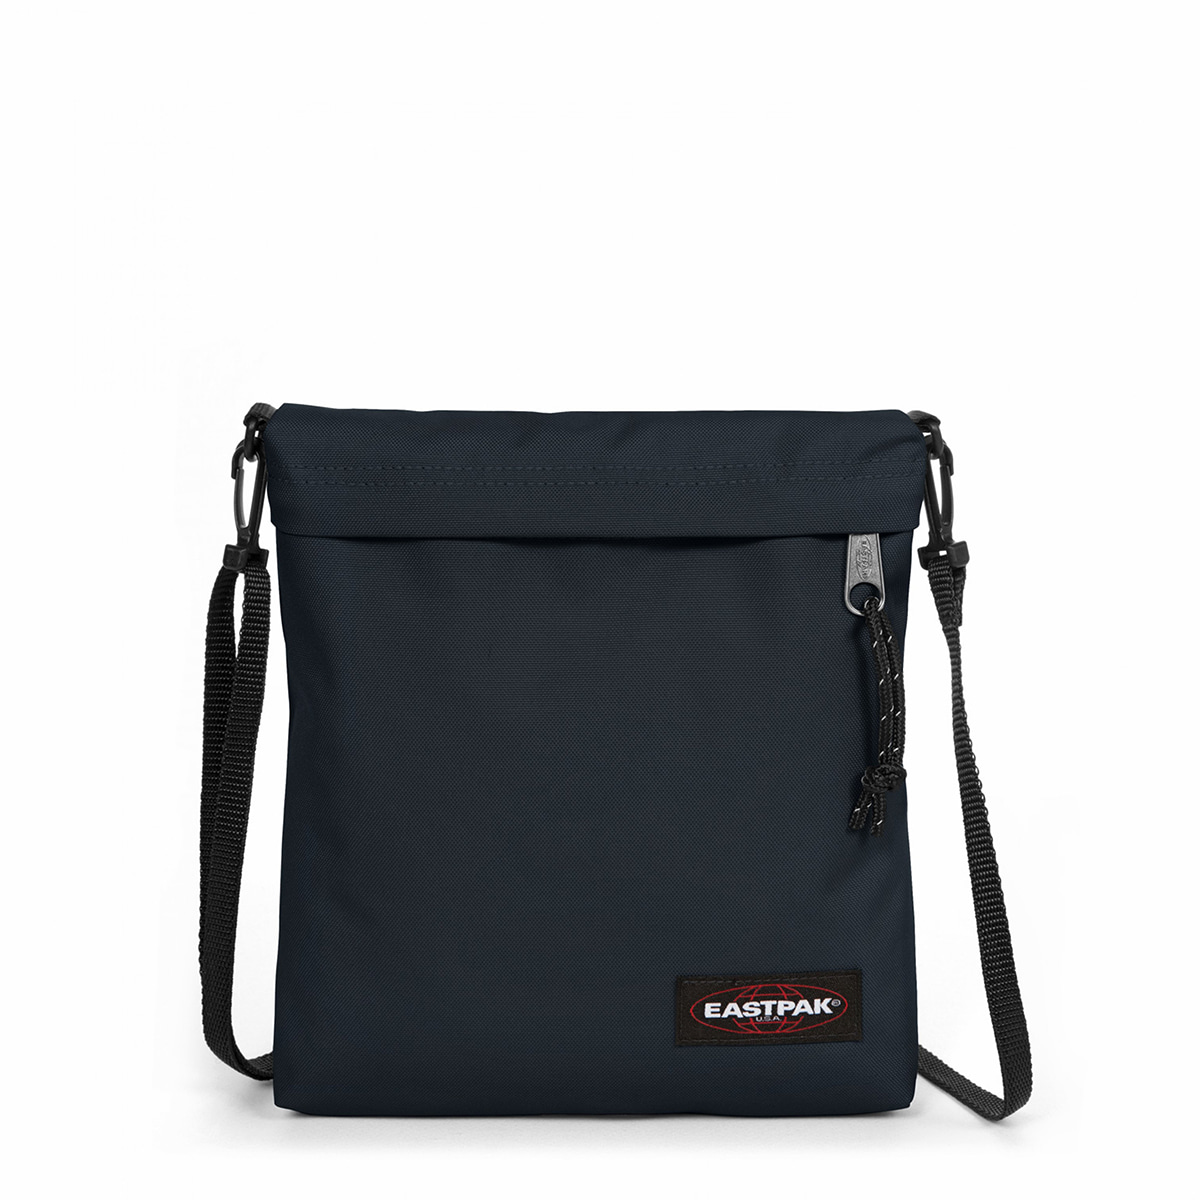 [EASTPAK] AUTHENTIC 크로스백 럭스 EJABS02 22S